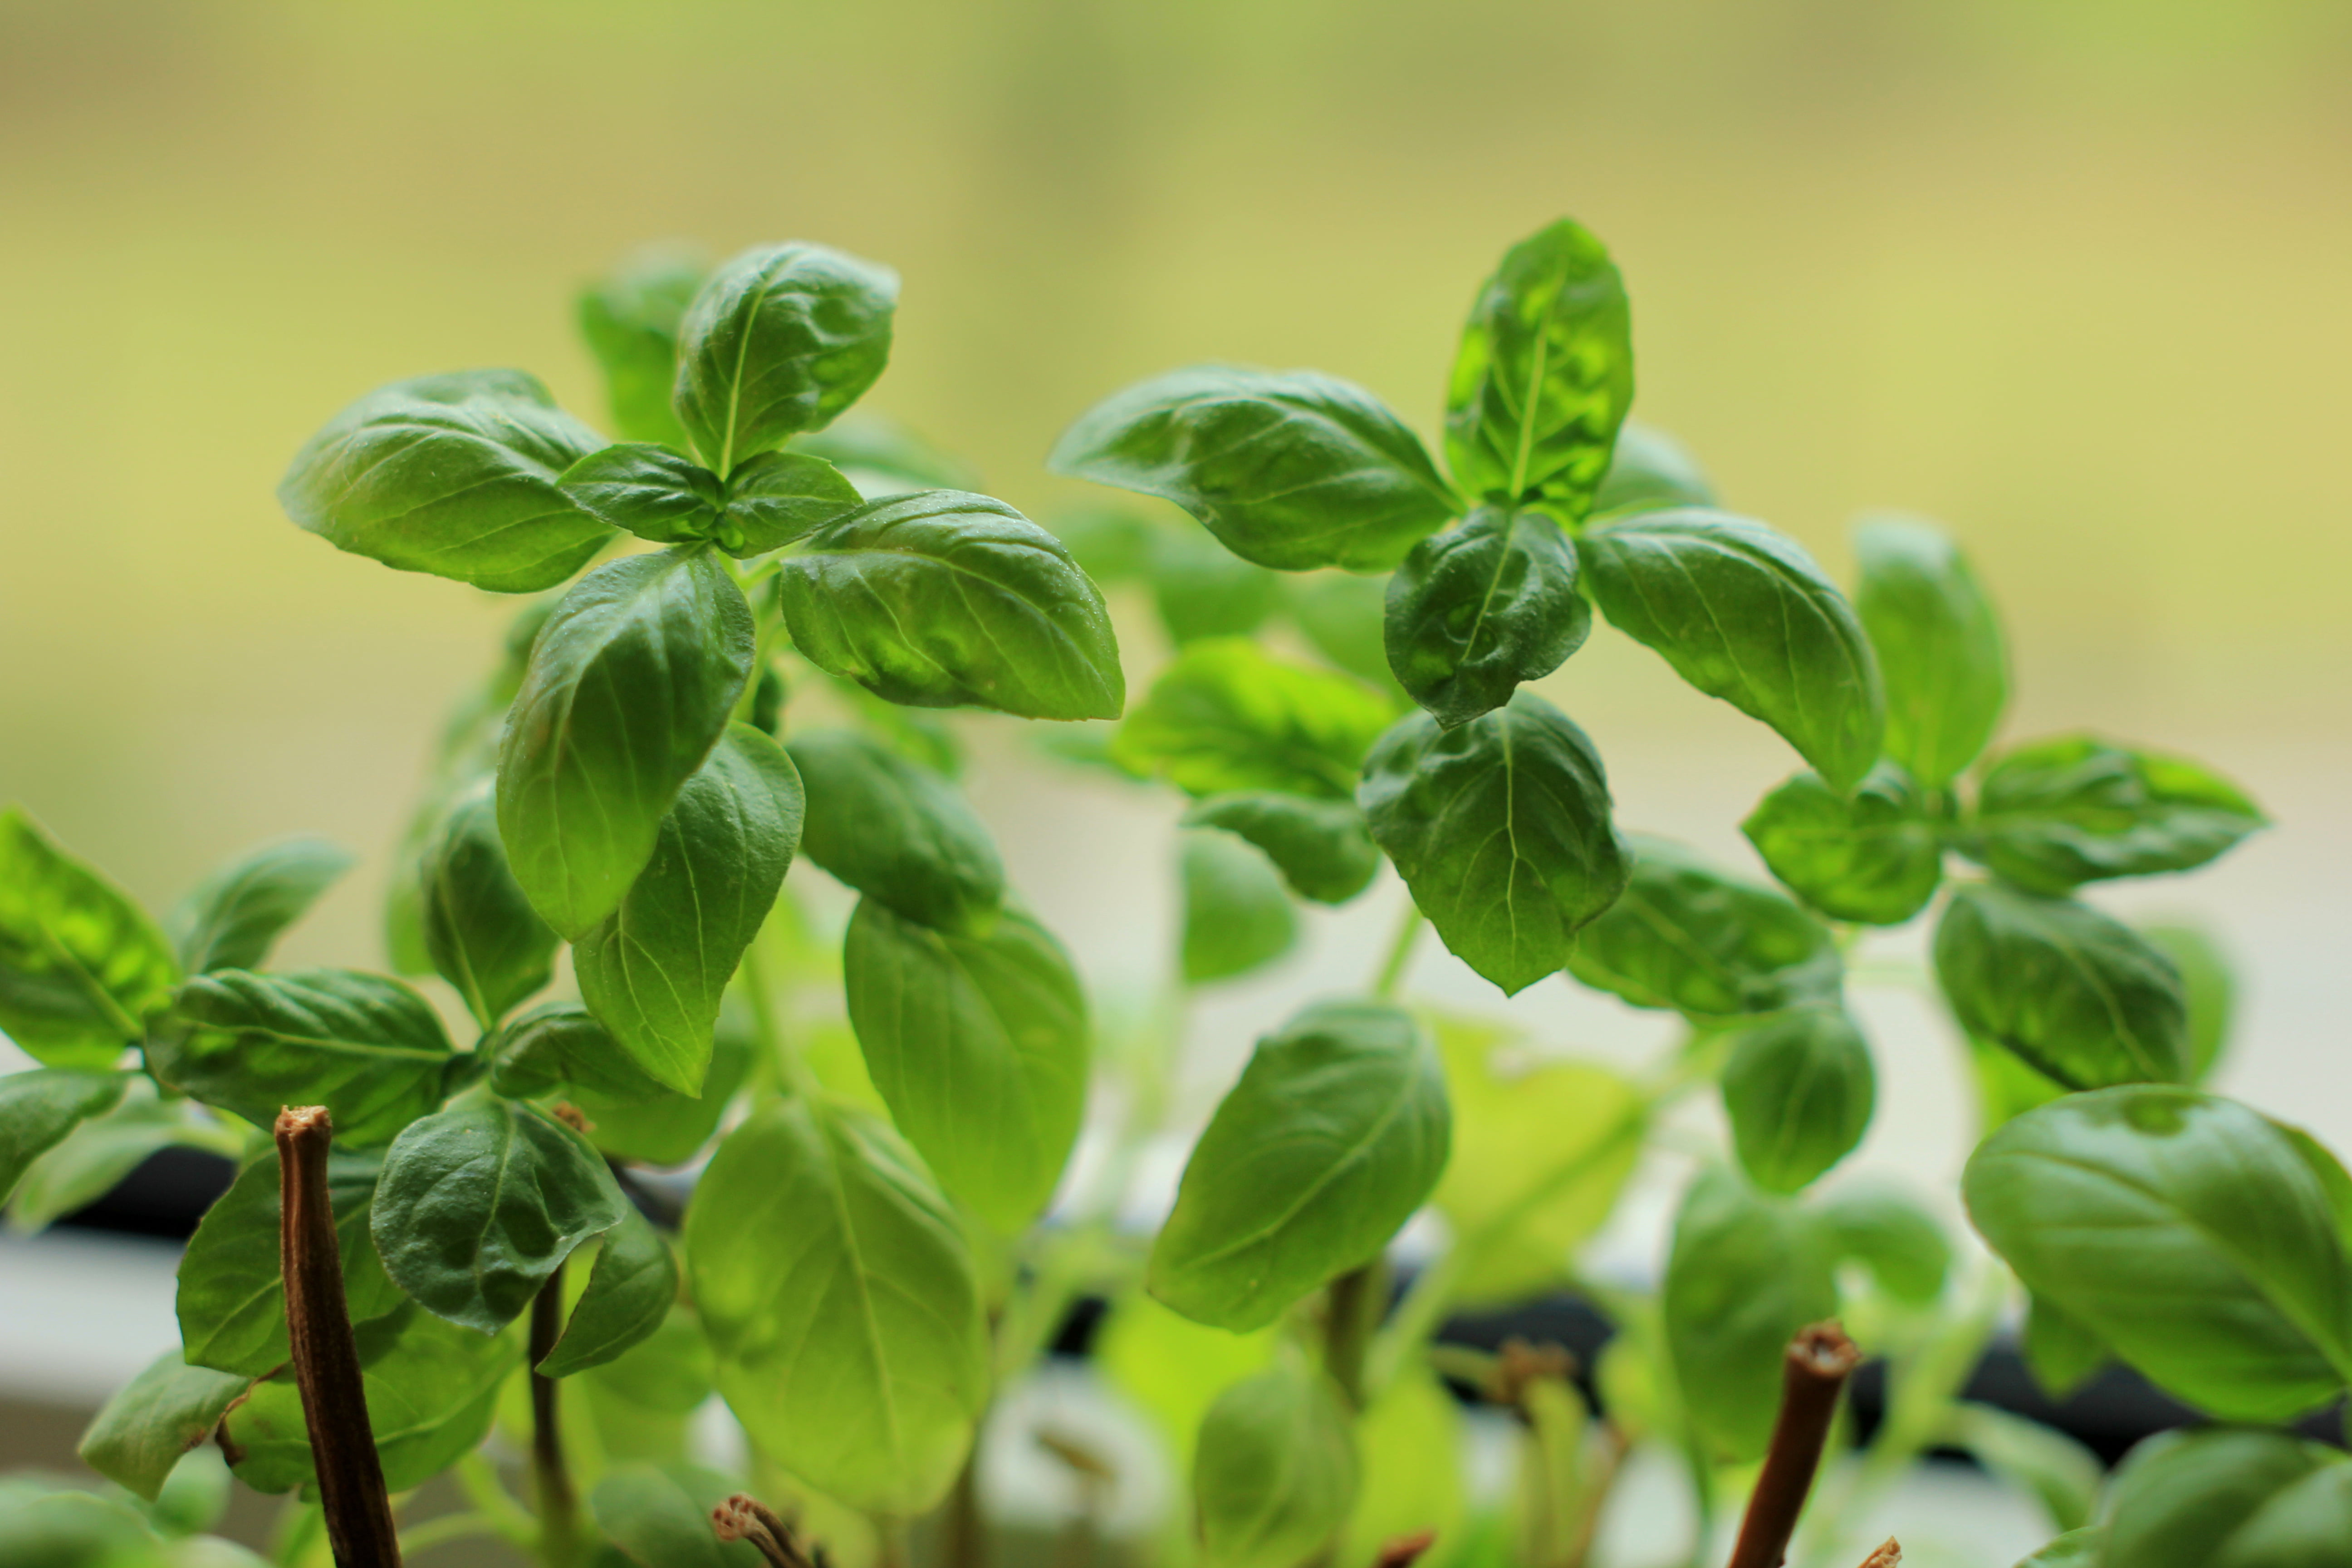 Shallow focus photo of green leaves plant basil HD wallpaper 5184x3456